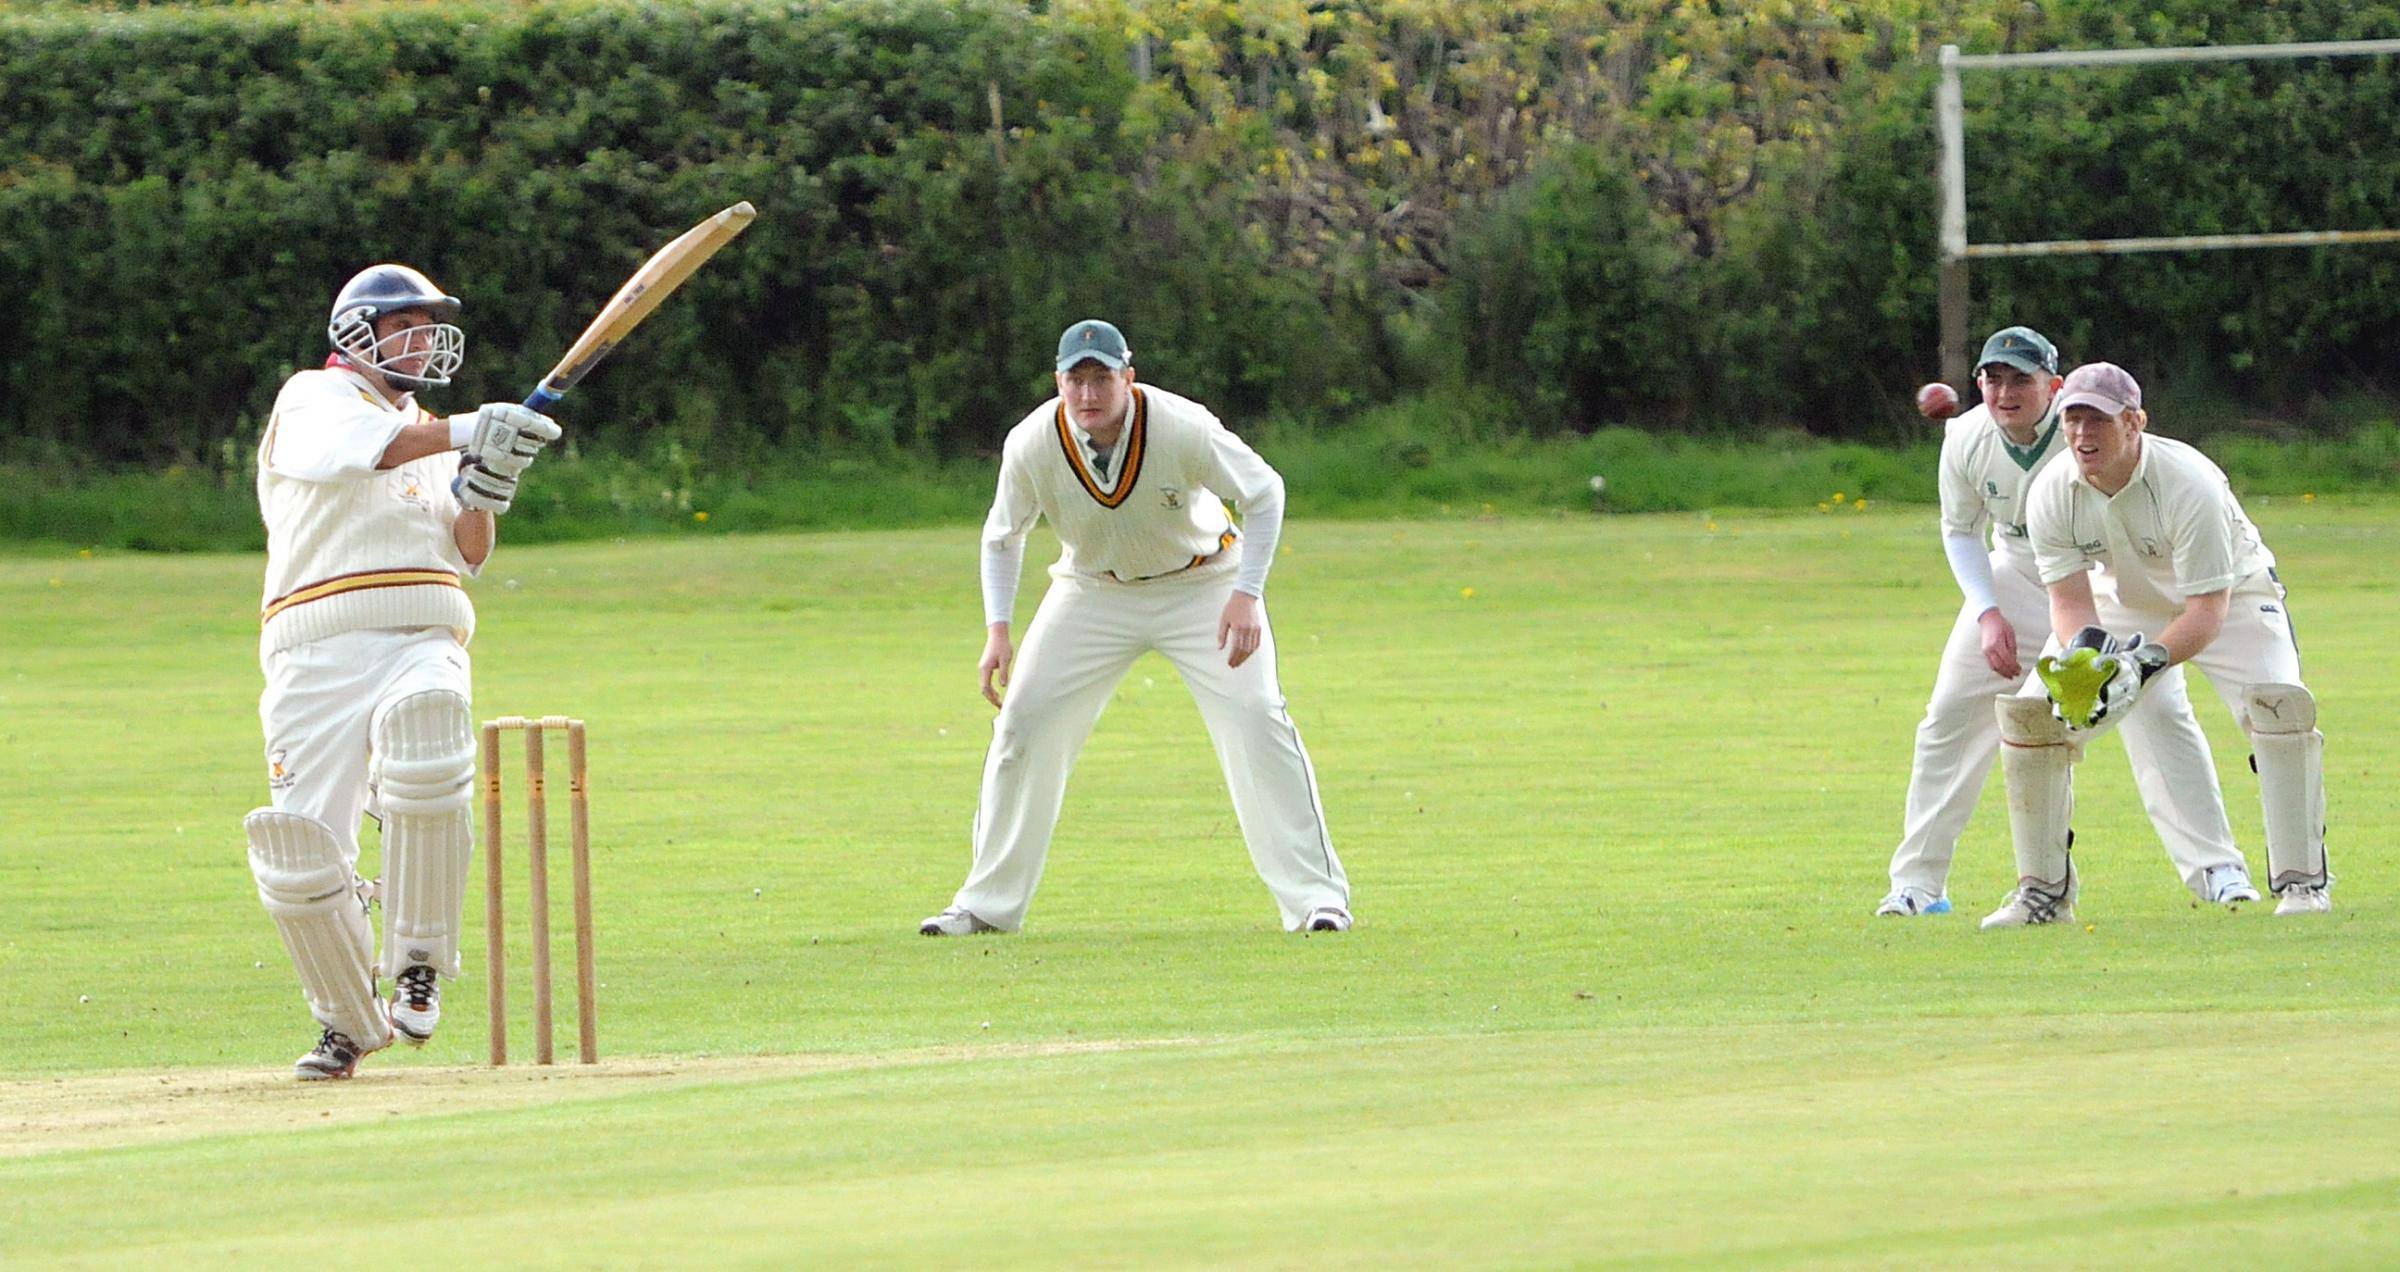 Nick Gibson made 45 for Sewerby Picture: Garry Atkinson